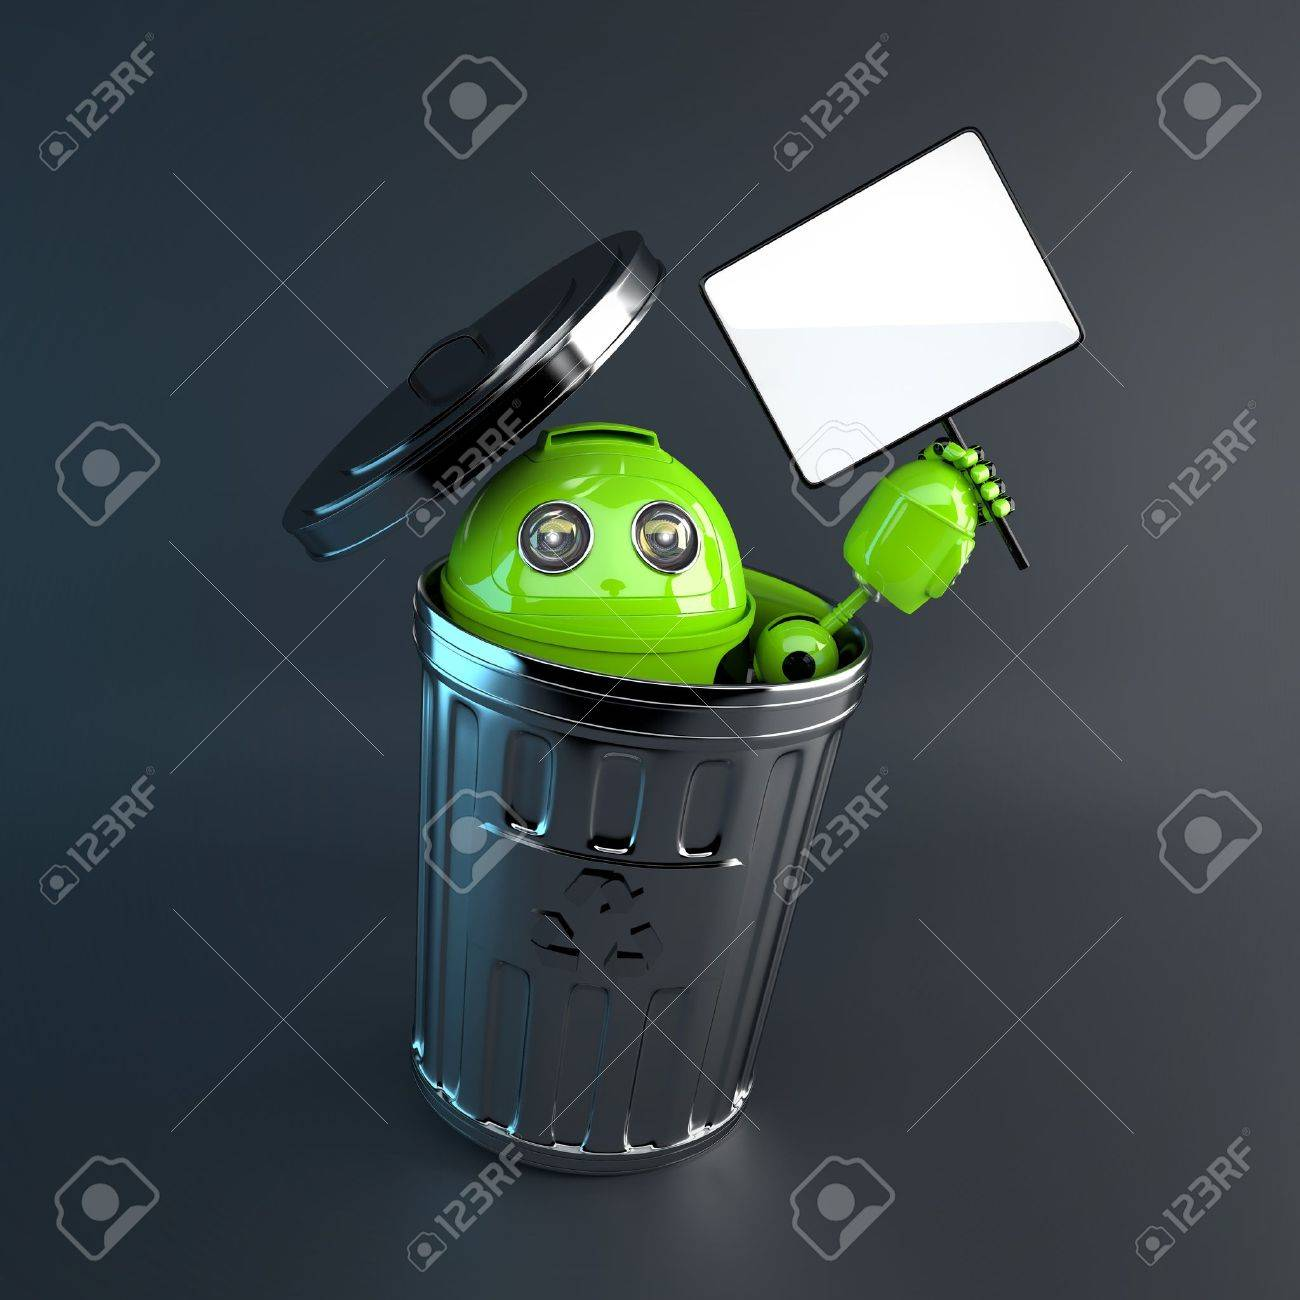 robot inside trash bin. Electronic recycle concept Stock Photo - 20275201